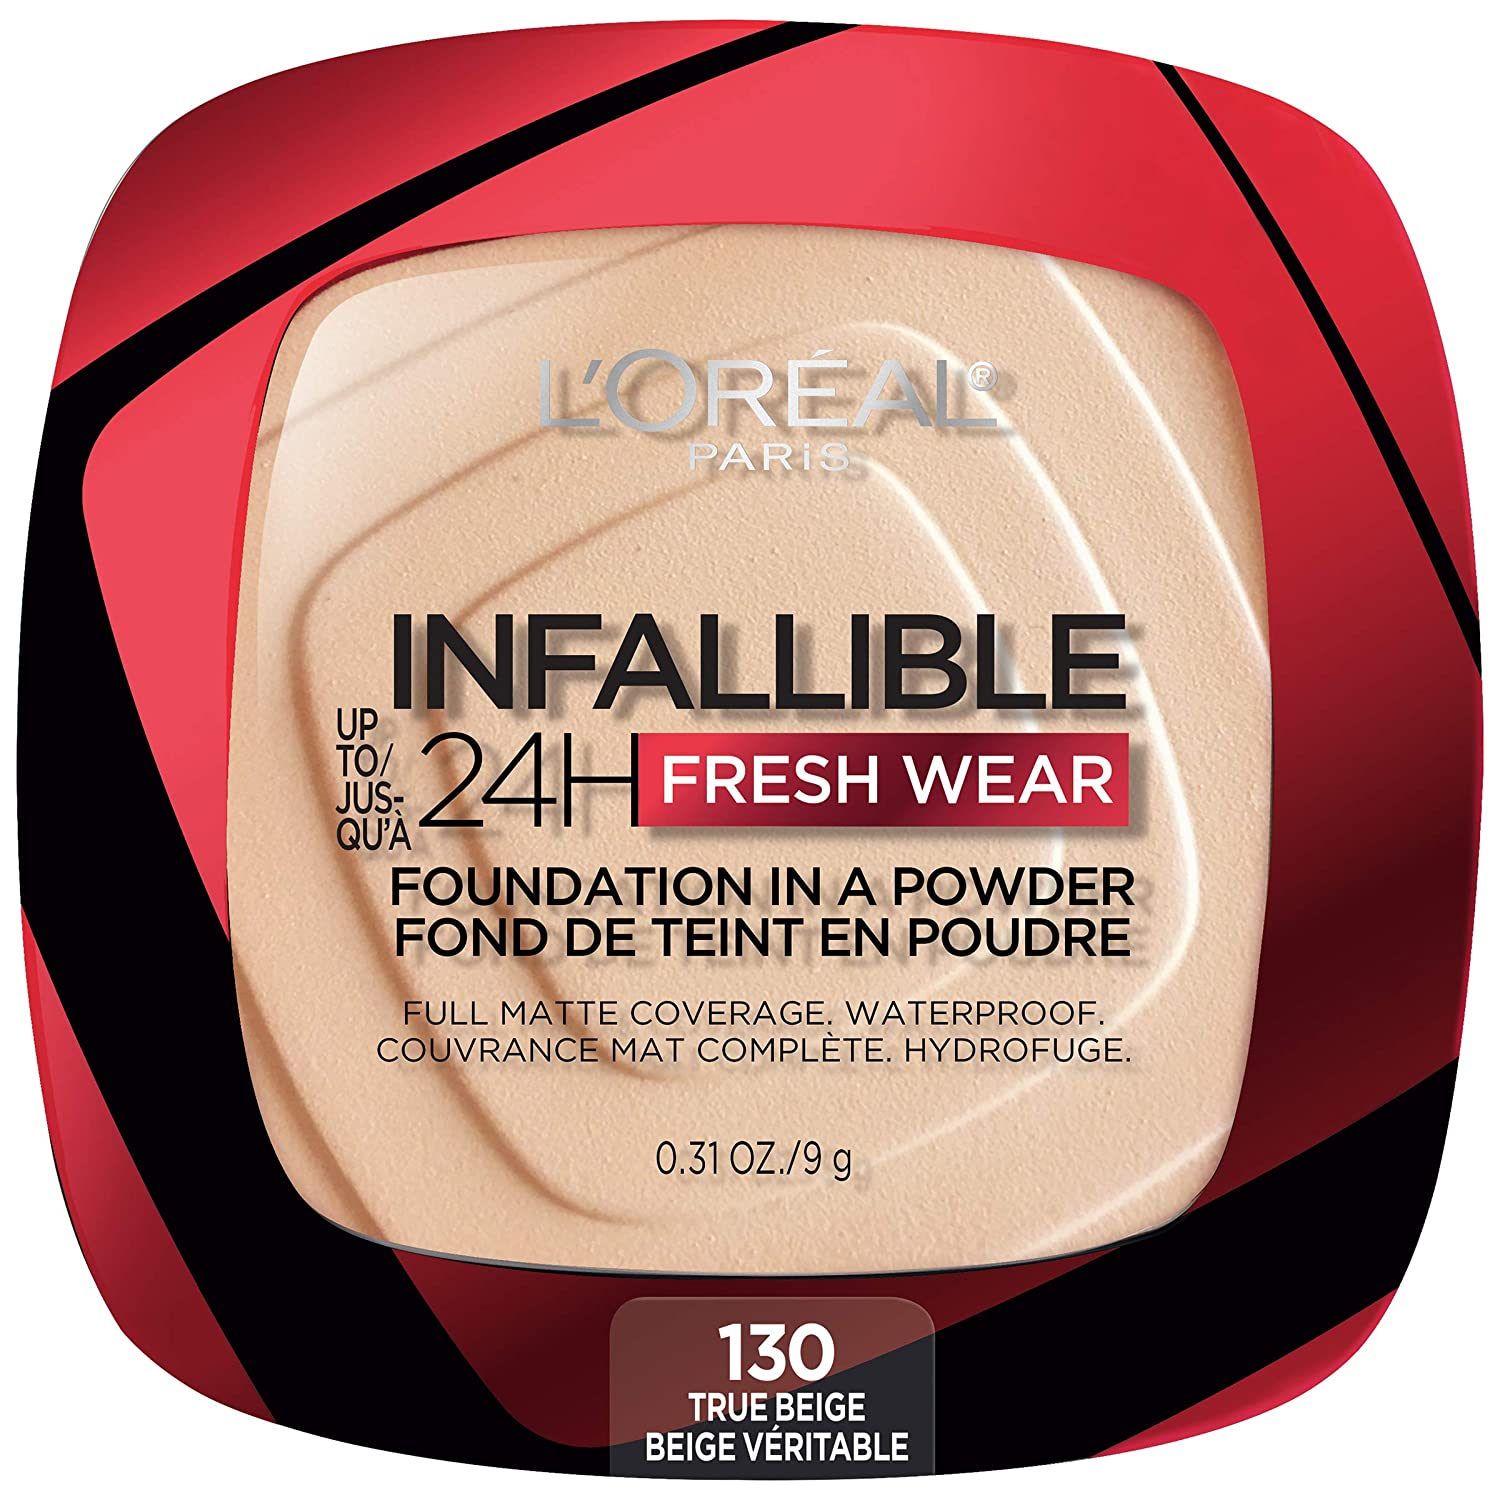 L'Oreal Paris Infallible Fresh Wear Foundation in a Powder, Up to 24H Wear, True Beige, 0.31 oz. : Everything Else